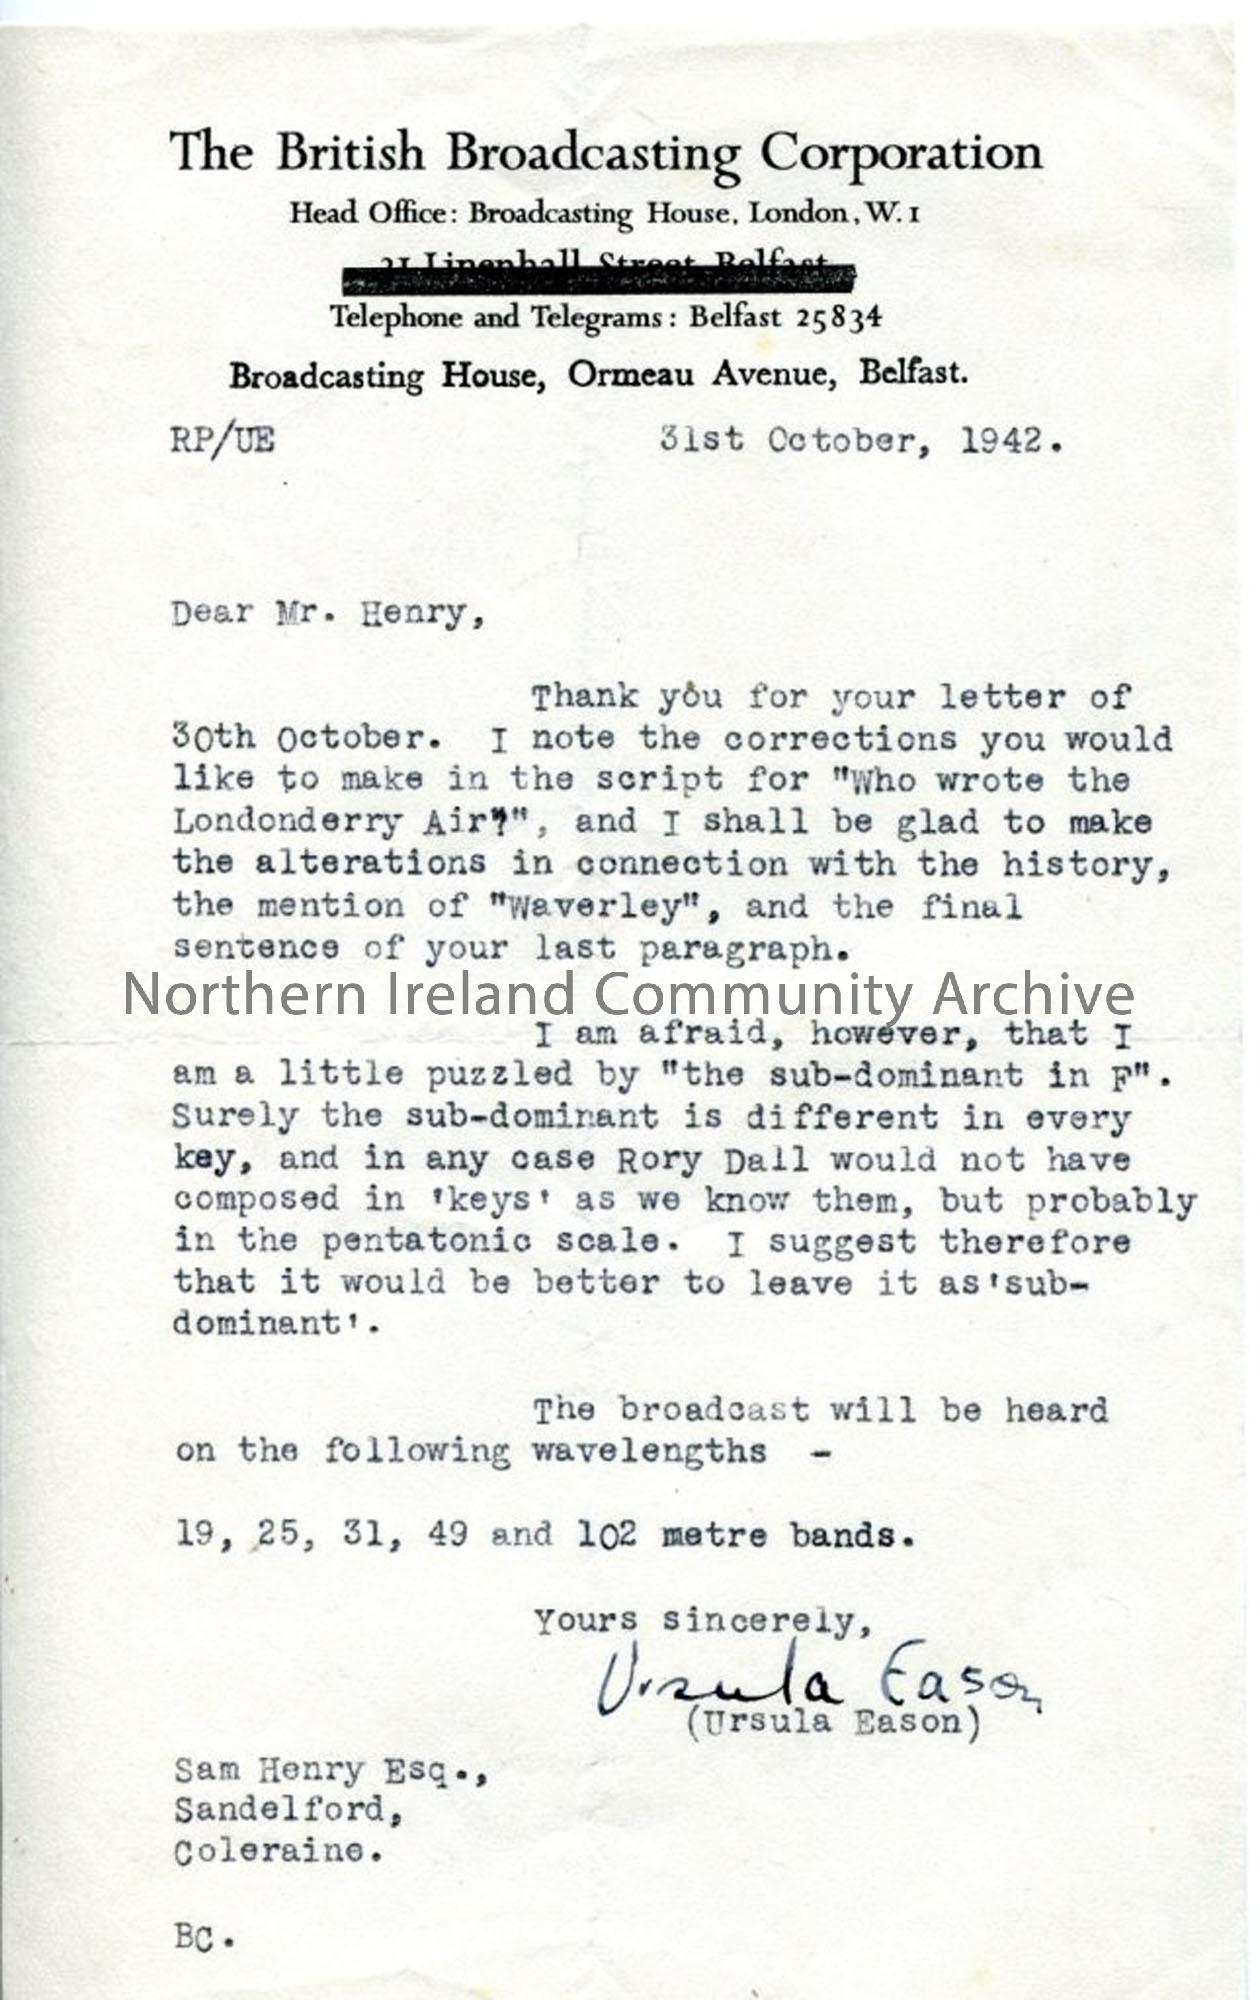 Letter from Ursula Eason of the BBC, 31.10.1942.